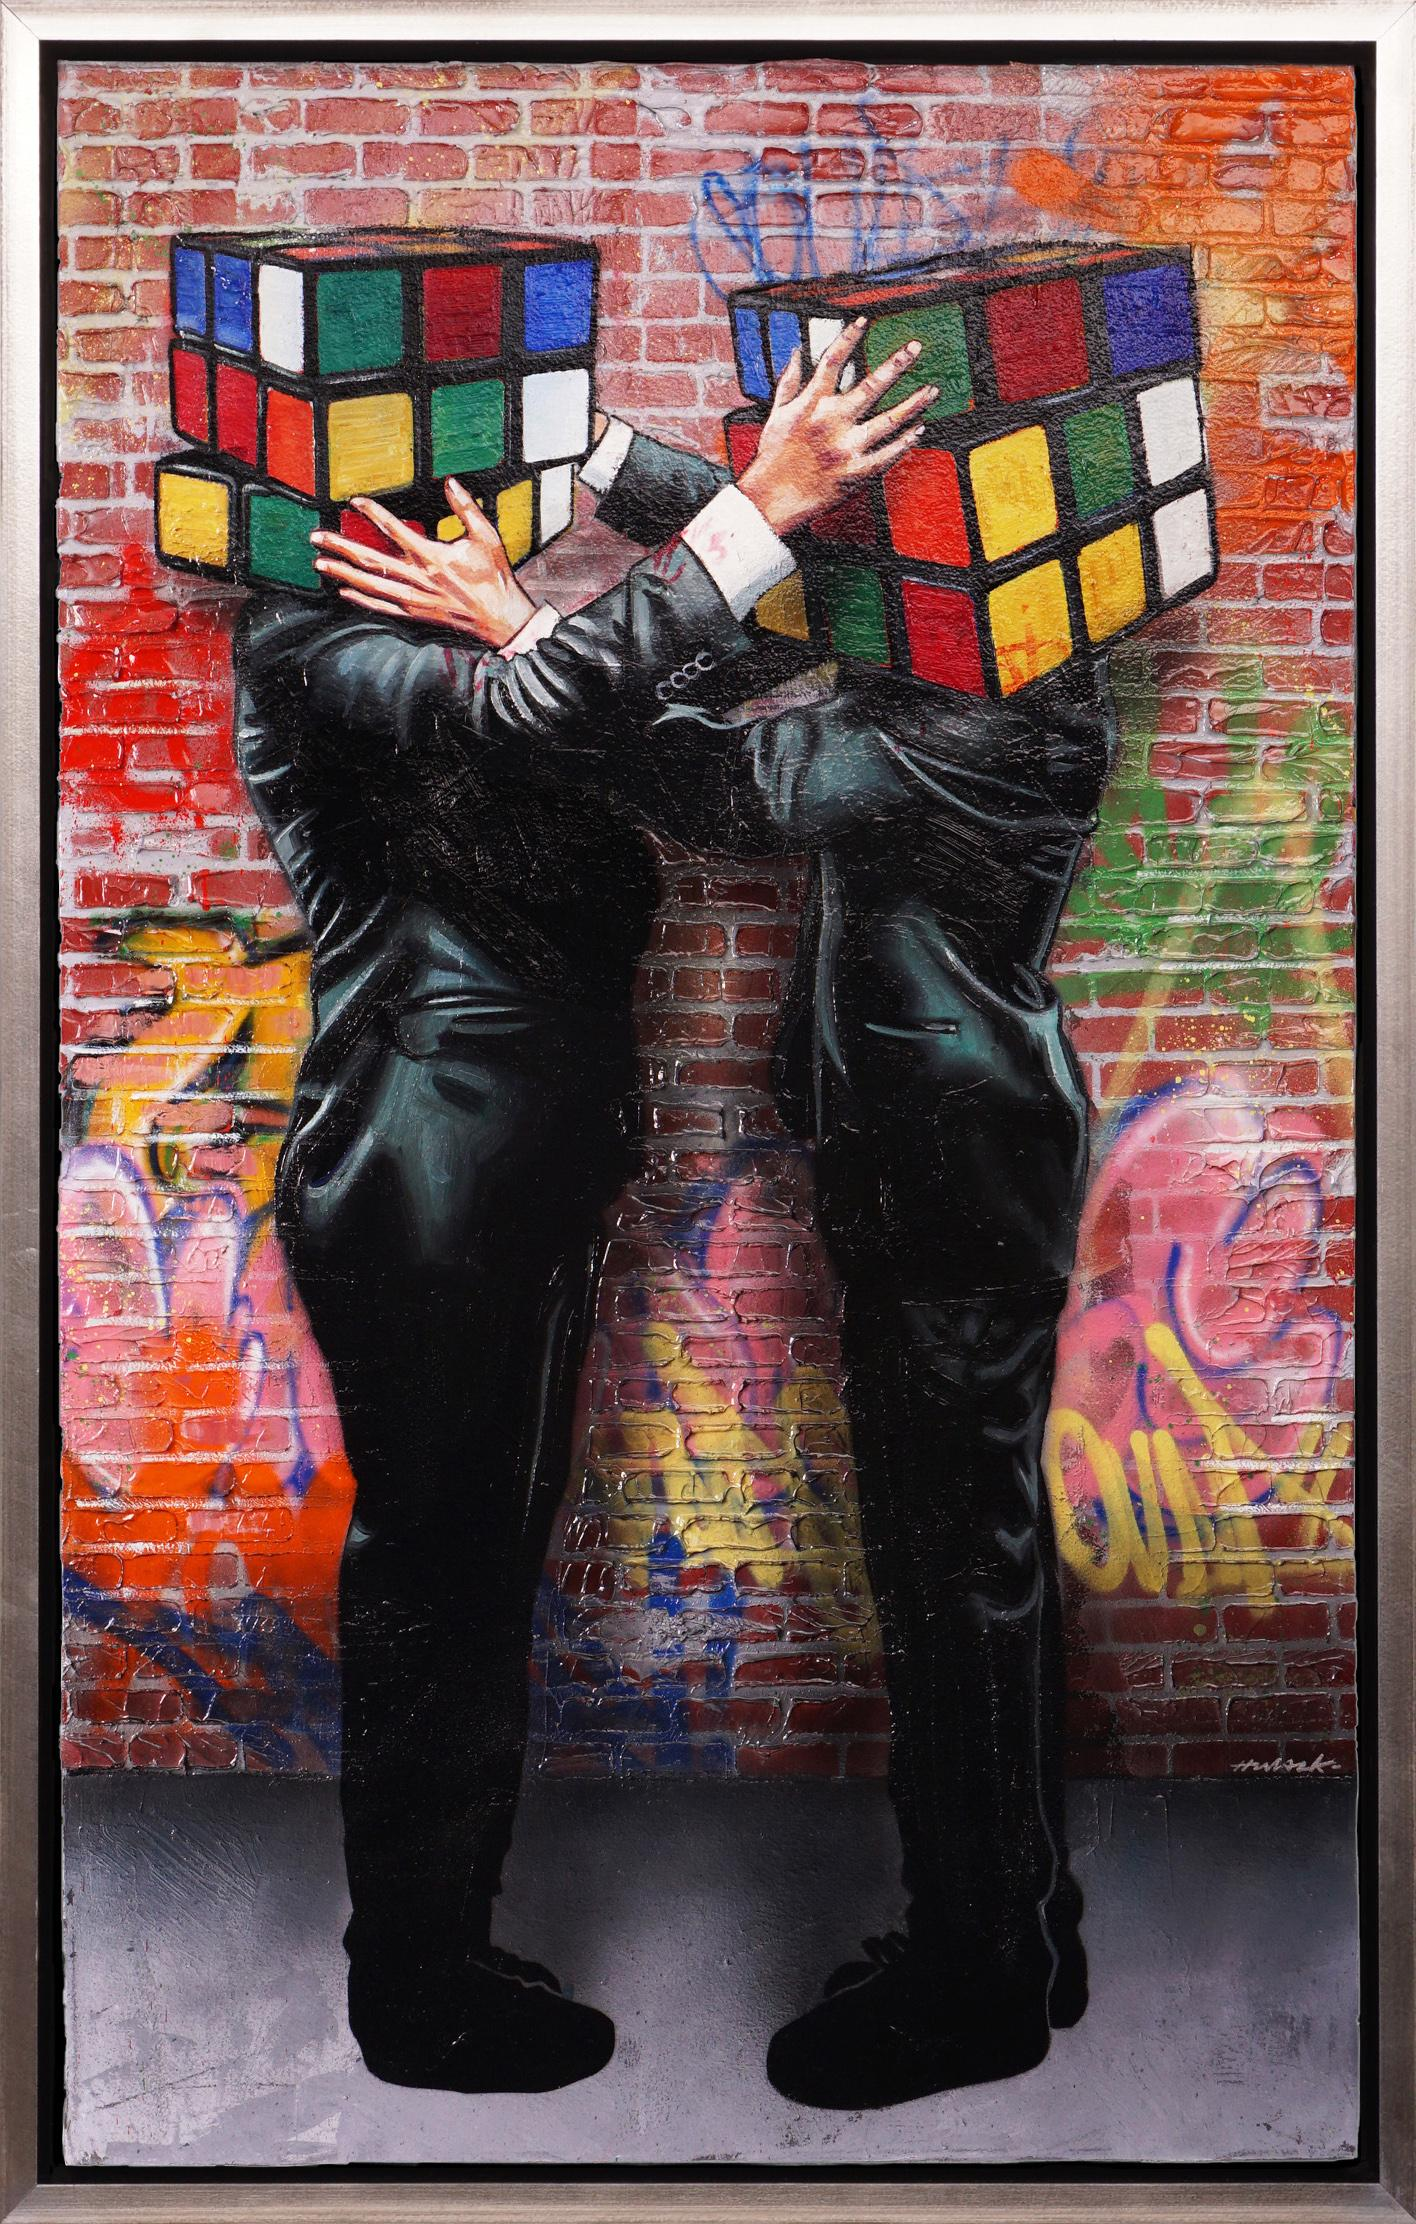 'Puzzled with Graffiti' Street Pop Art Painting on Canvas, Unique, 2021